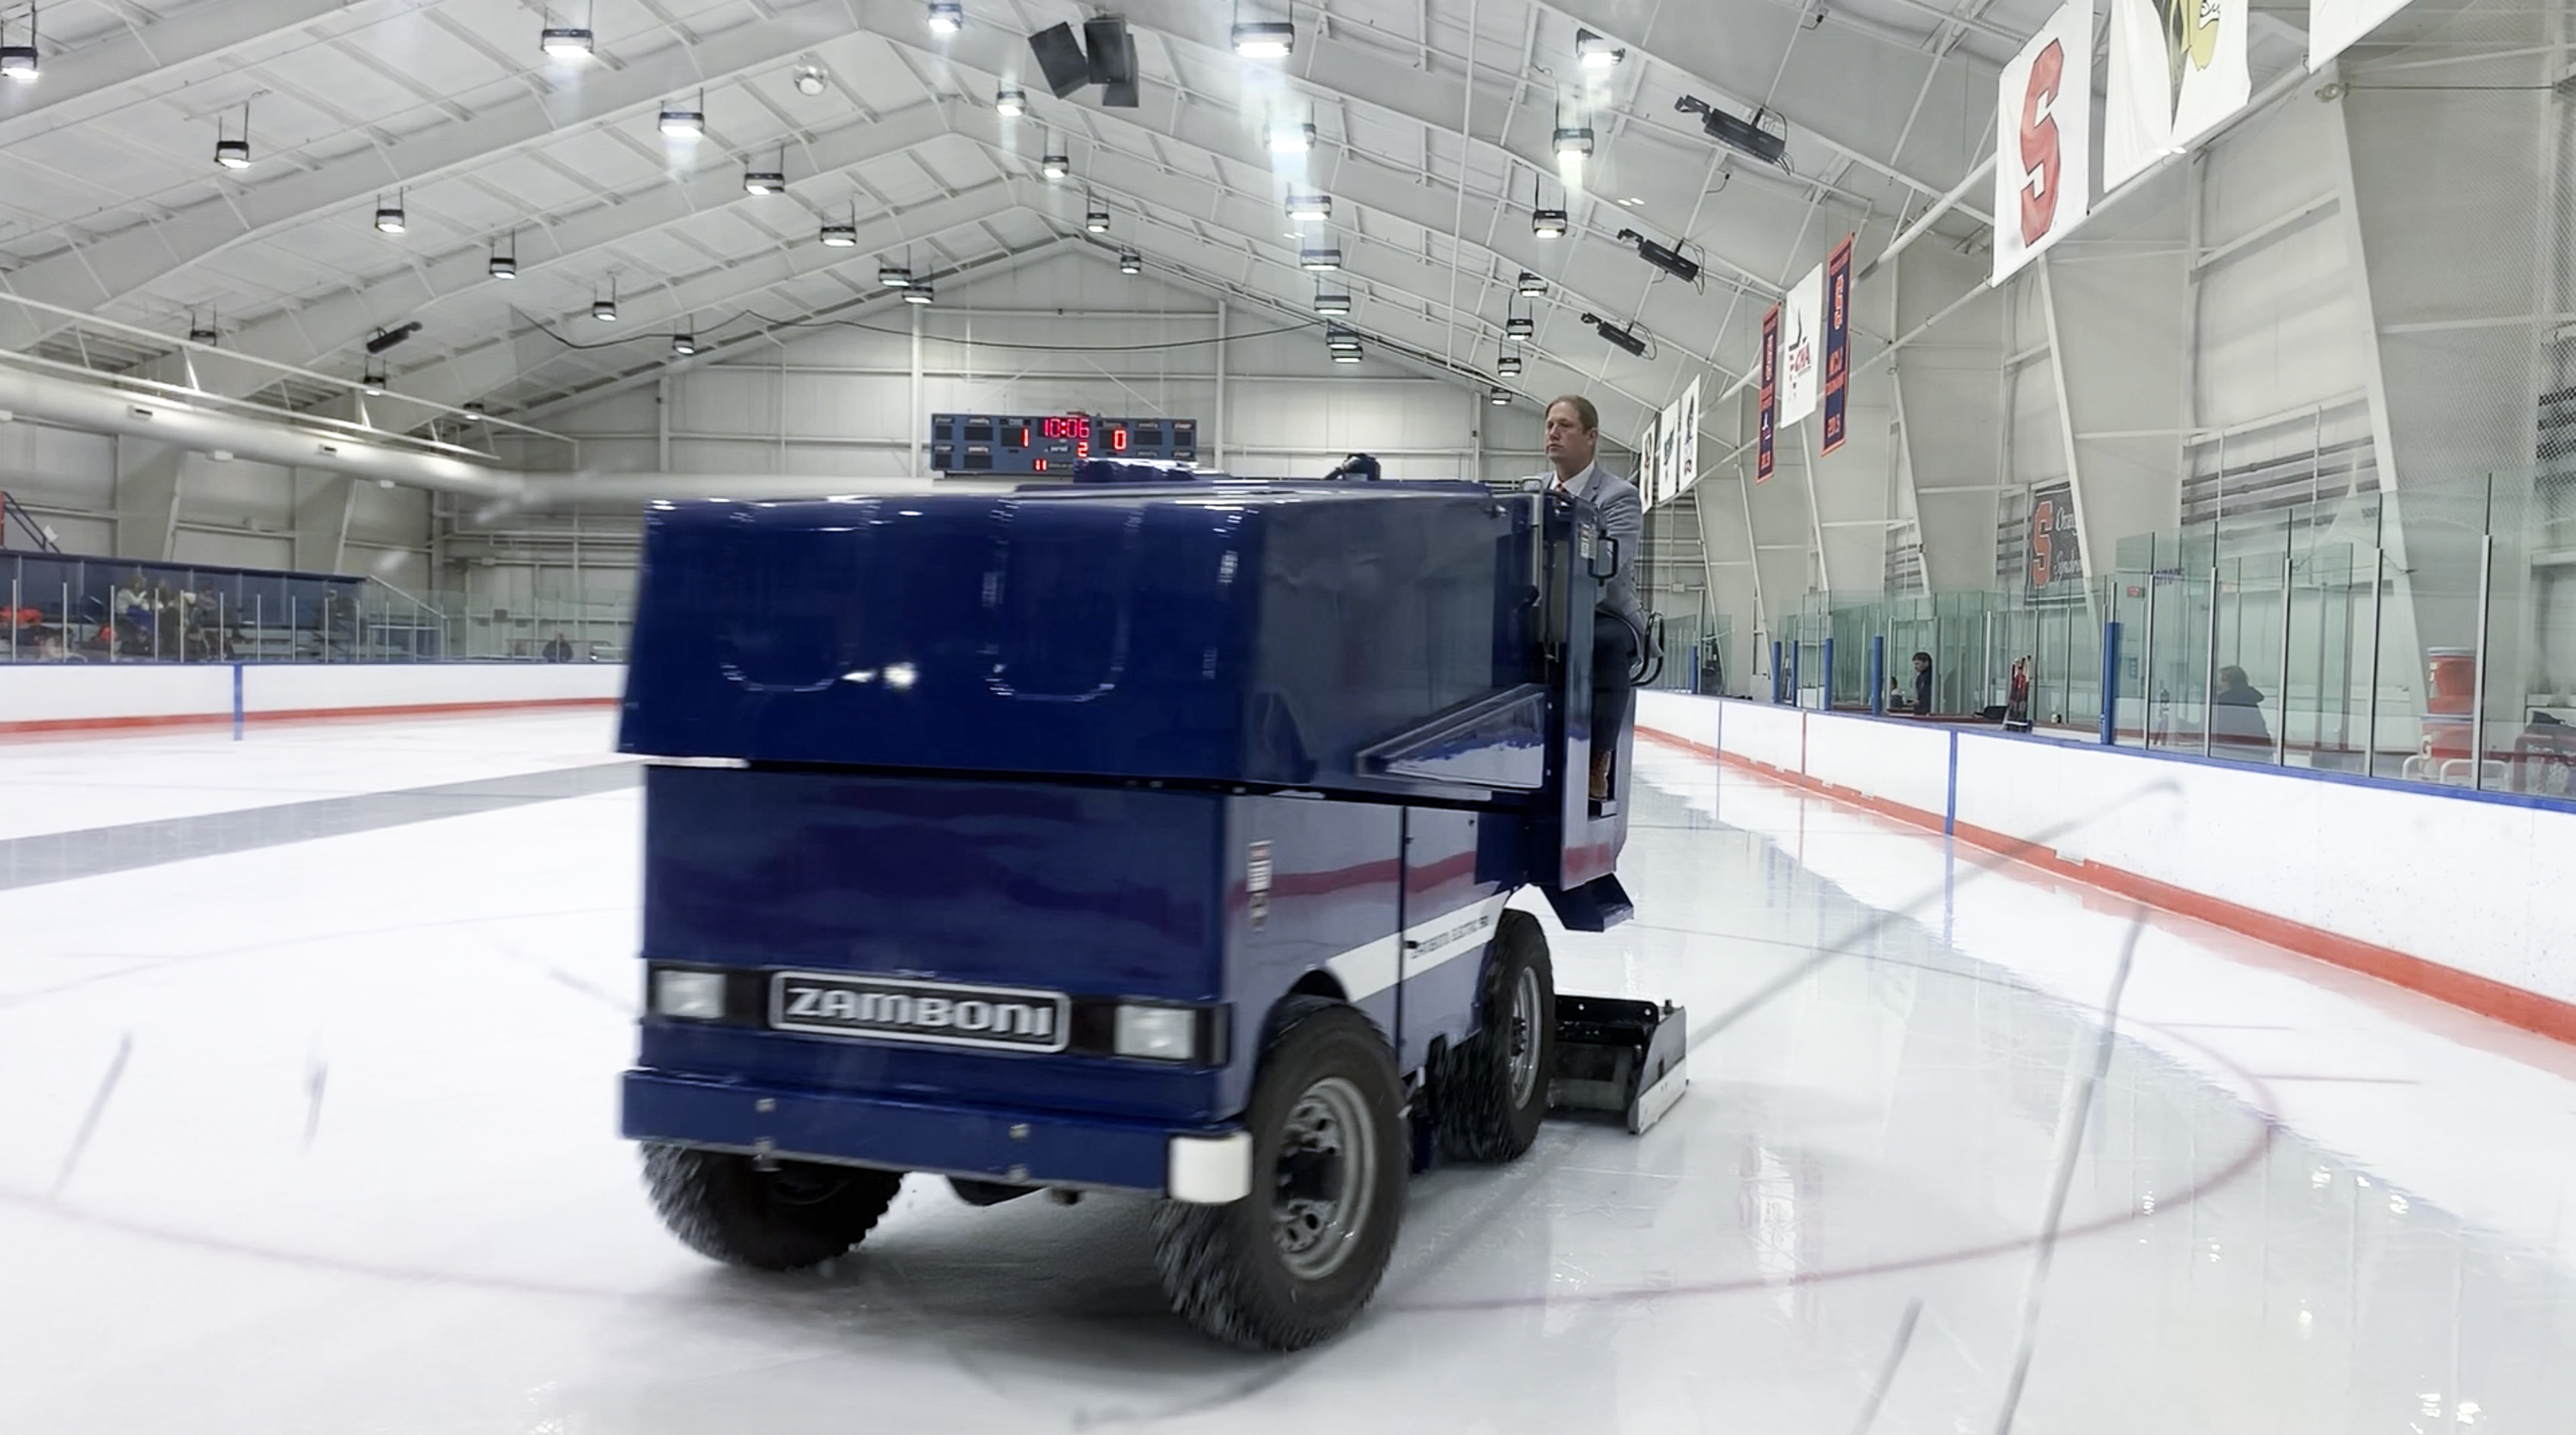 Tennity Ice Pavillion Zamboni